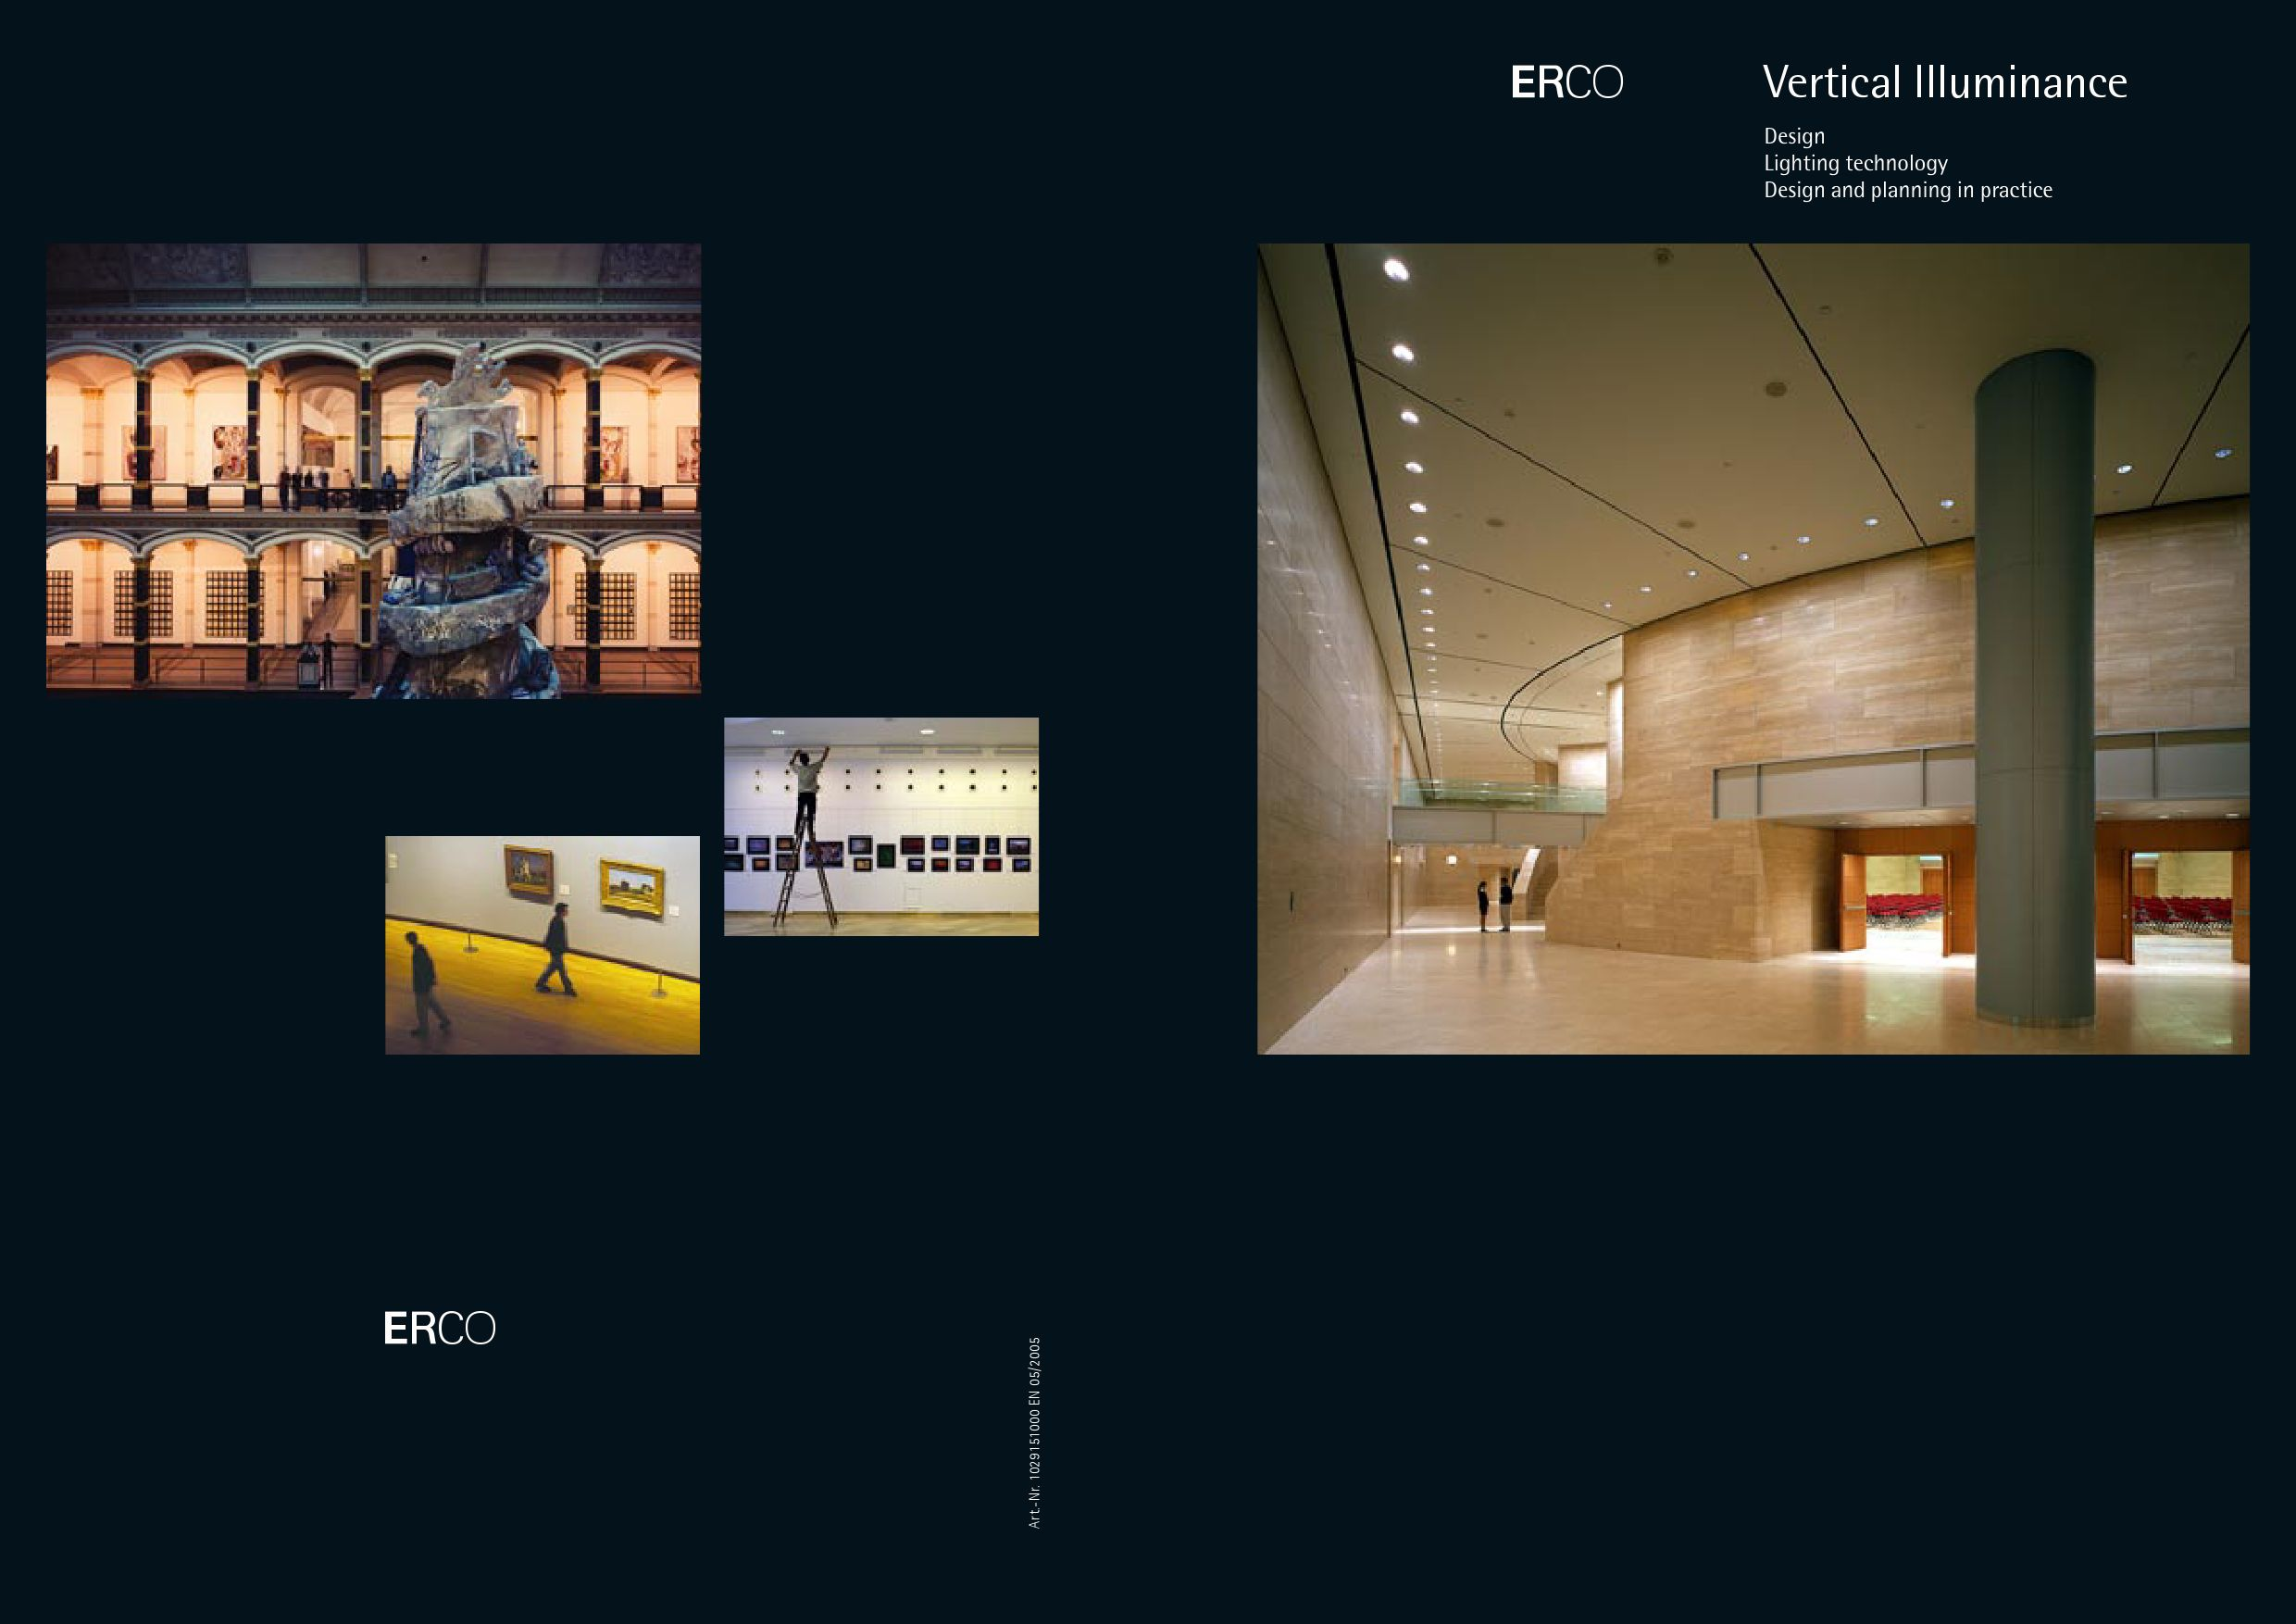 Erco Vertical Illuminance Design Lighting Technology